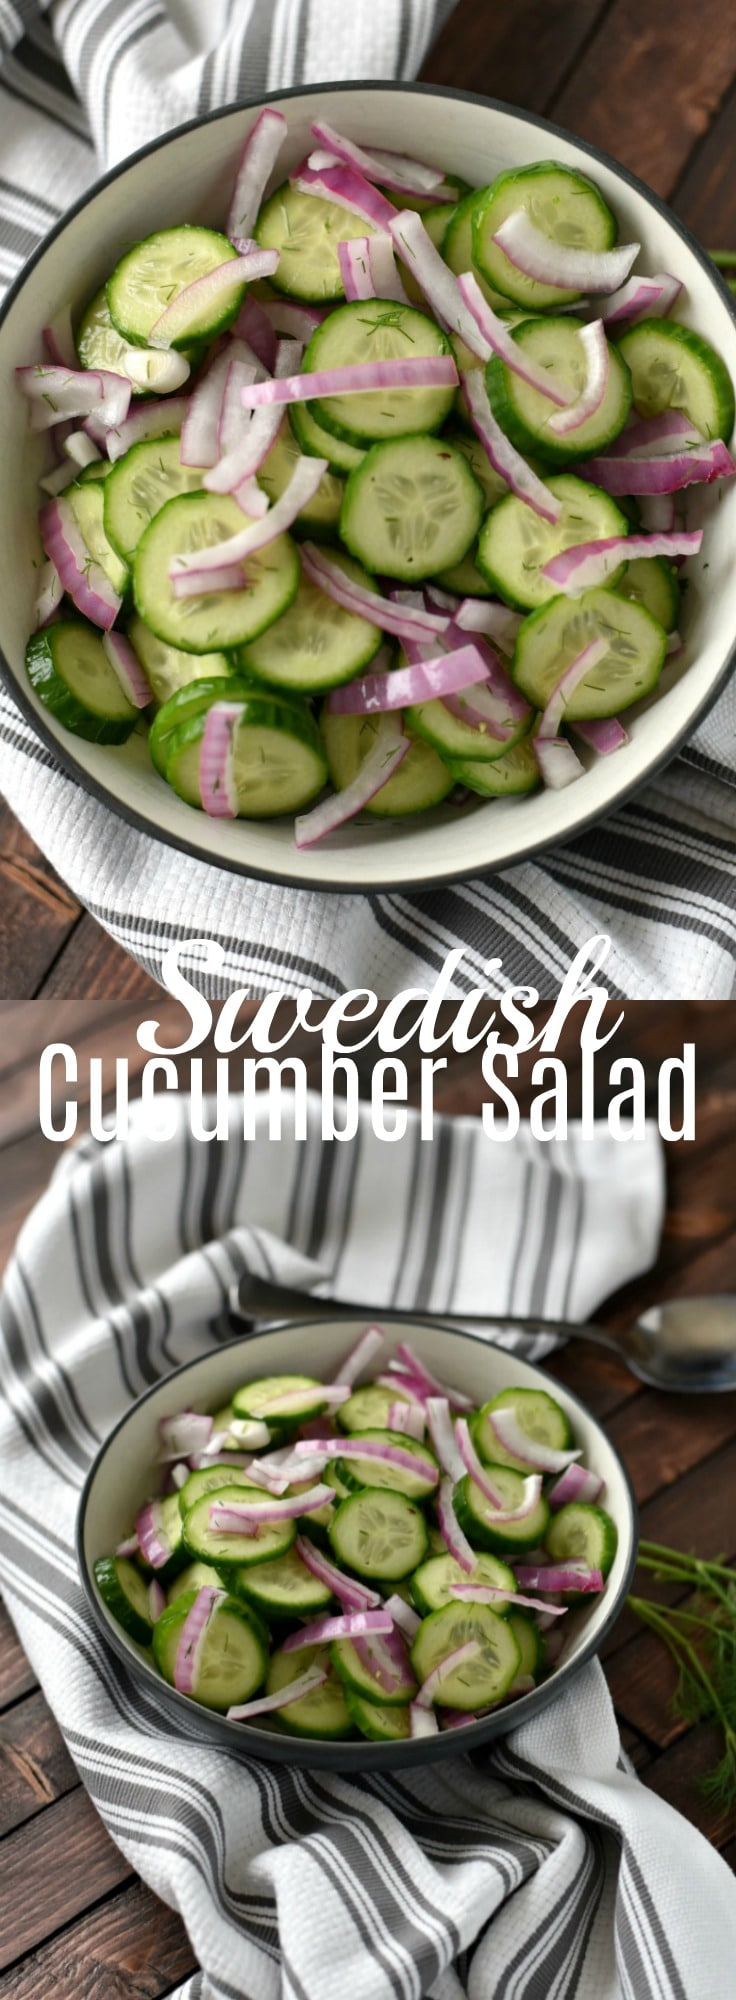 This easy cucumber salad is a perfect swedish side dish. It only takes a few ingredients and 5 minutes to put together.